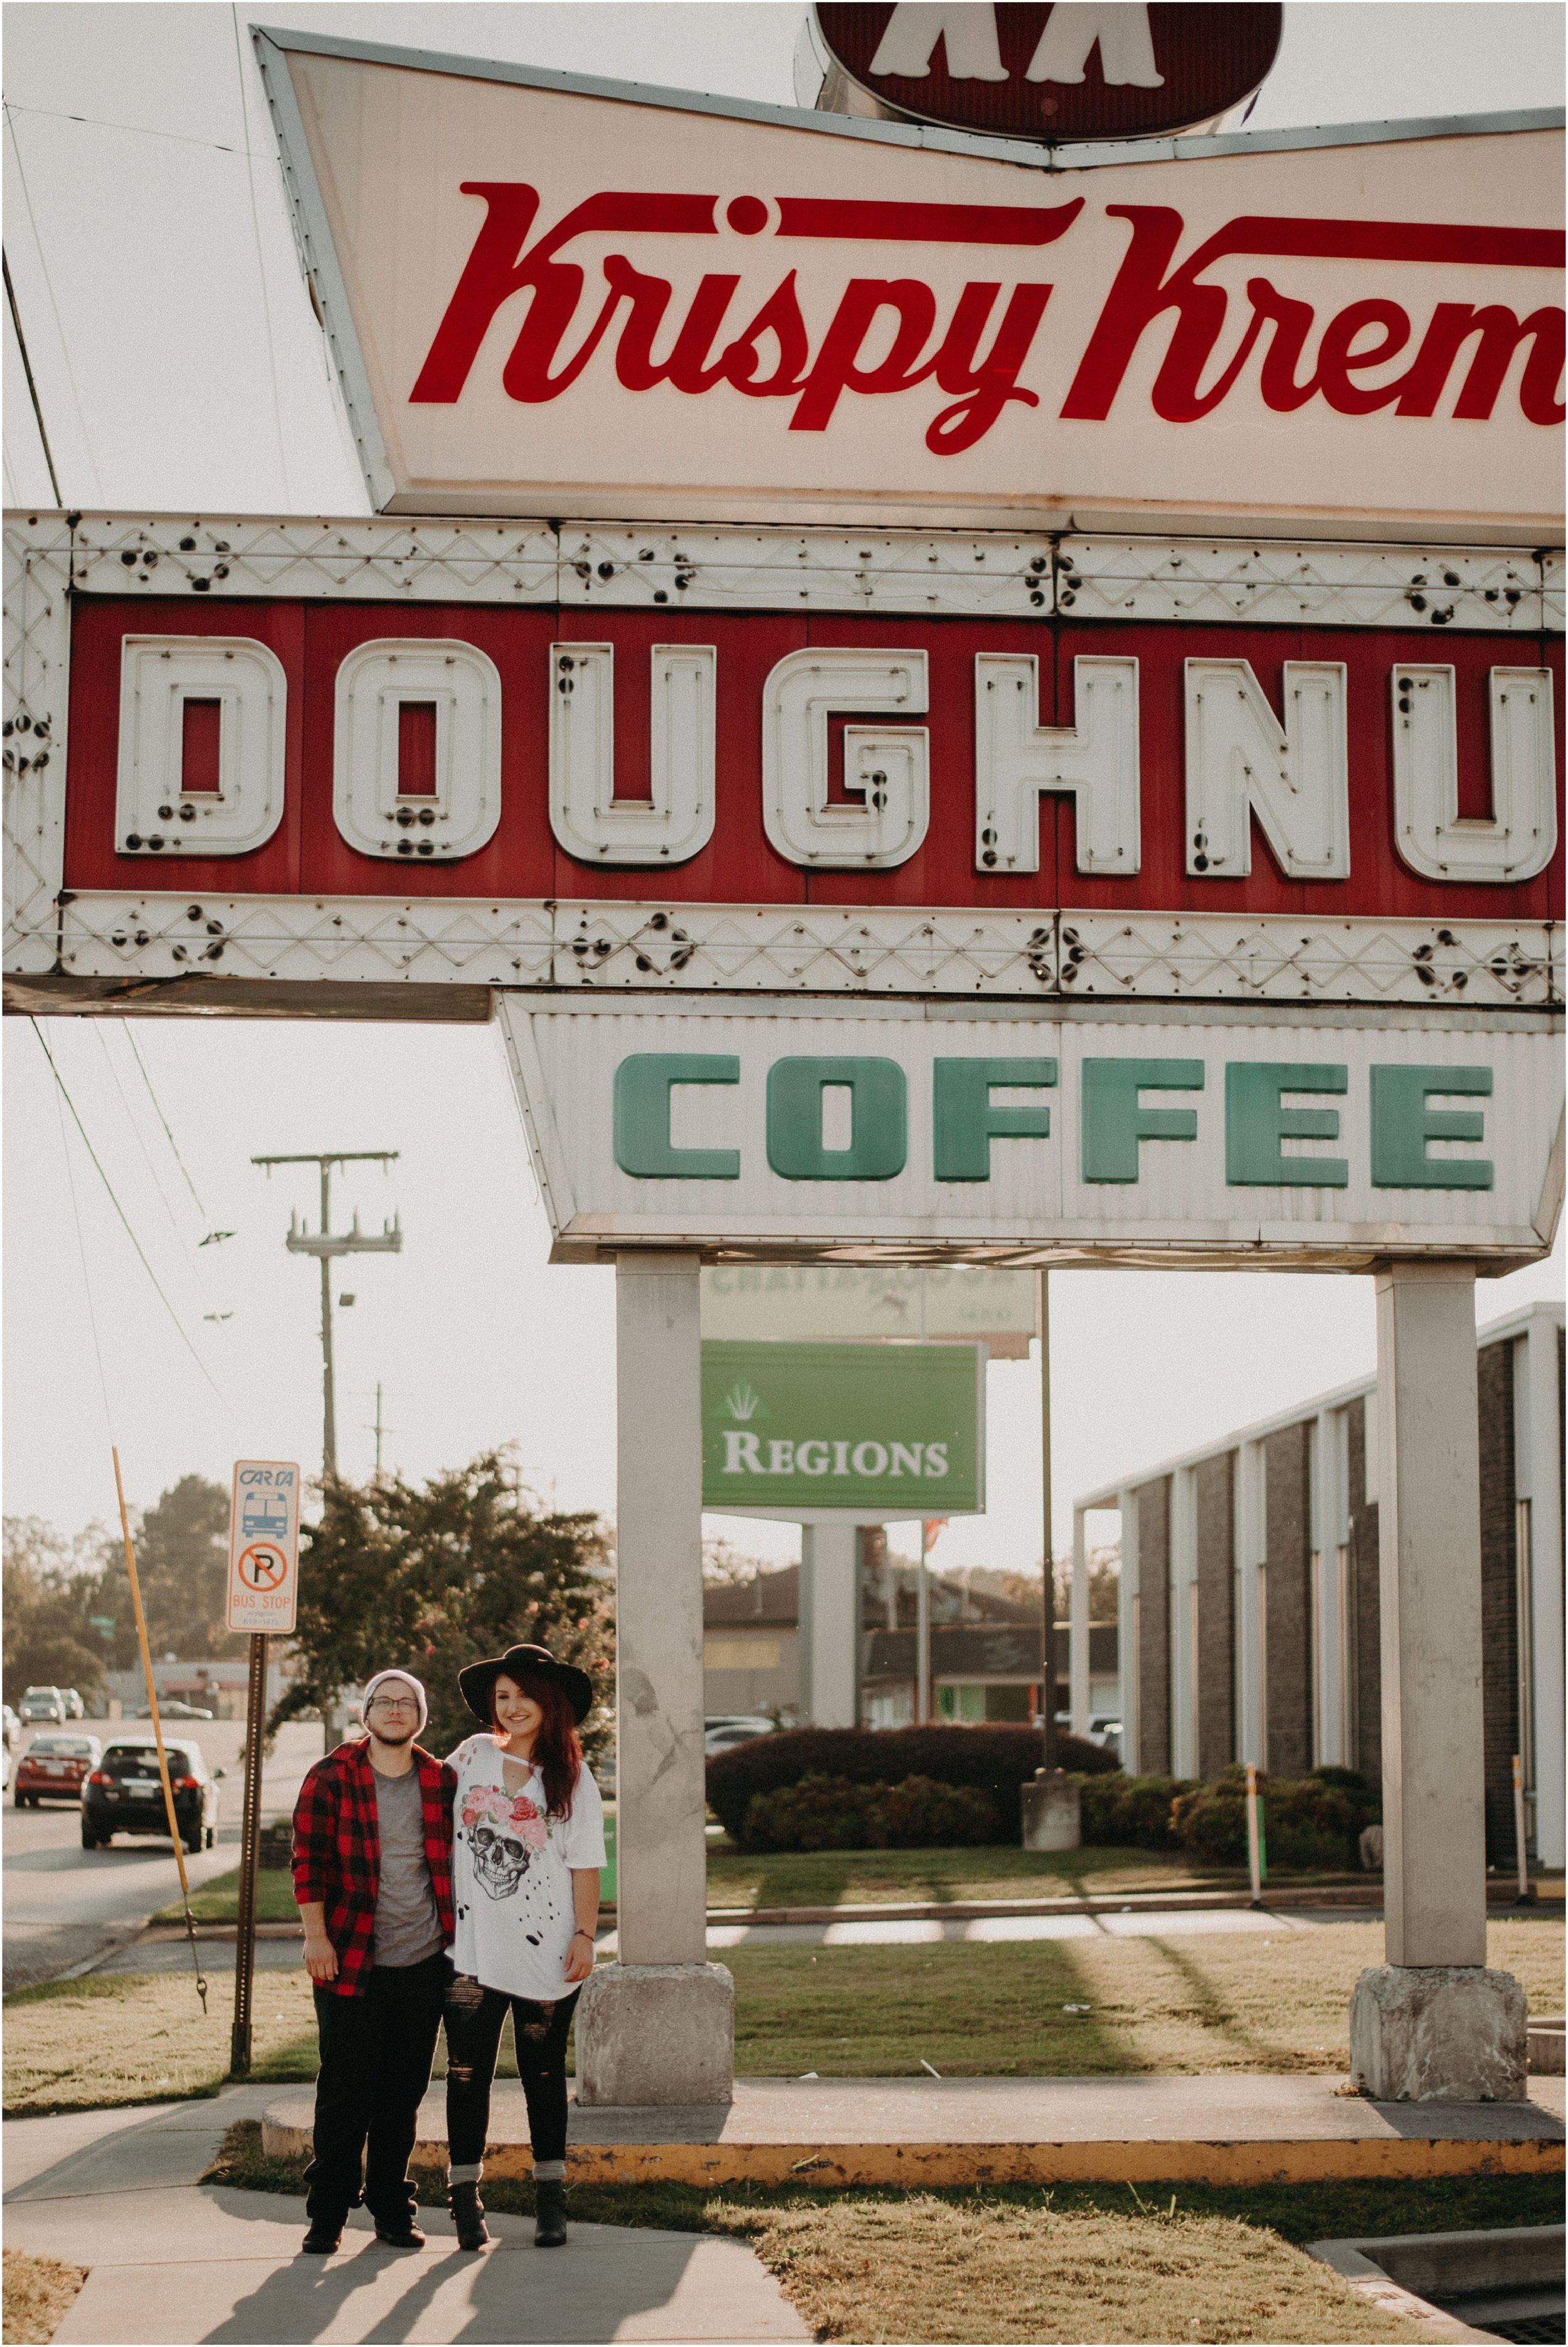 Krispy Kreme, Donuts, and Coffee Neon Sign and alternative couple